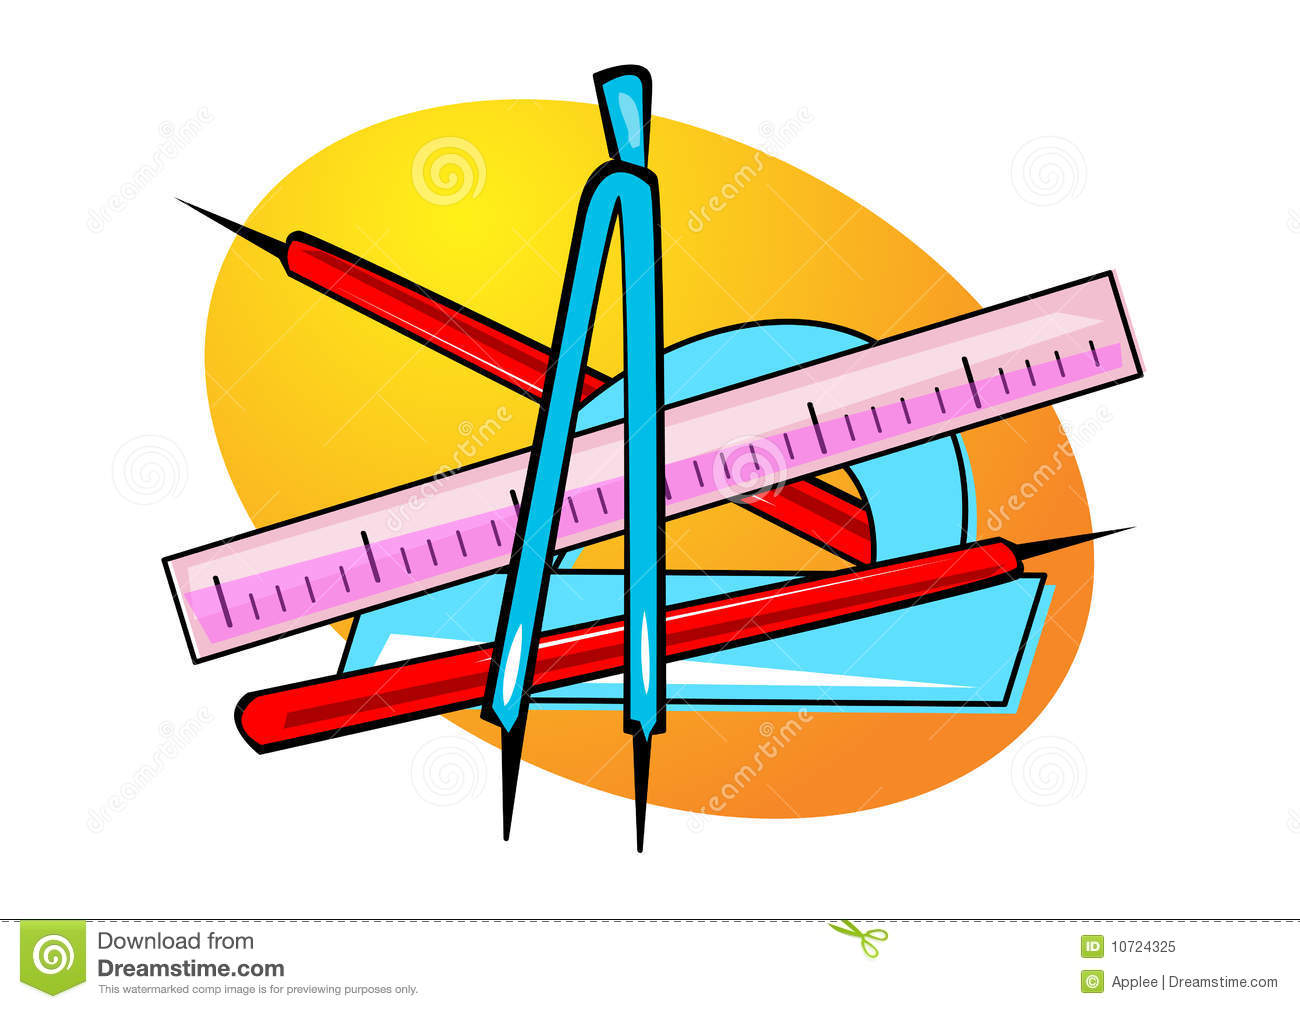 Geometry clipart instrument. Maths cliparts free download